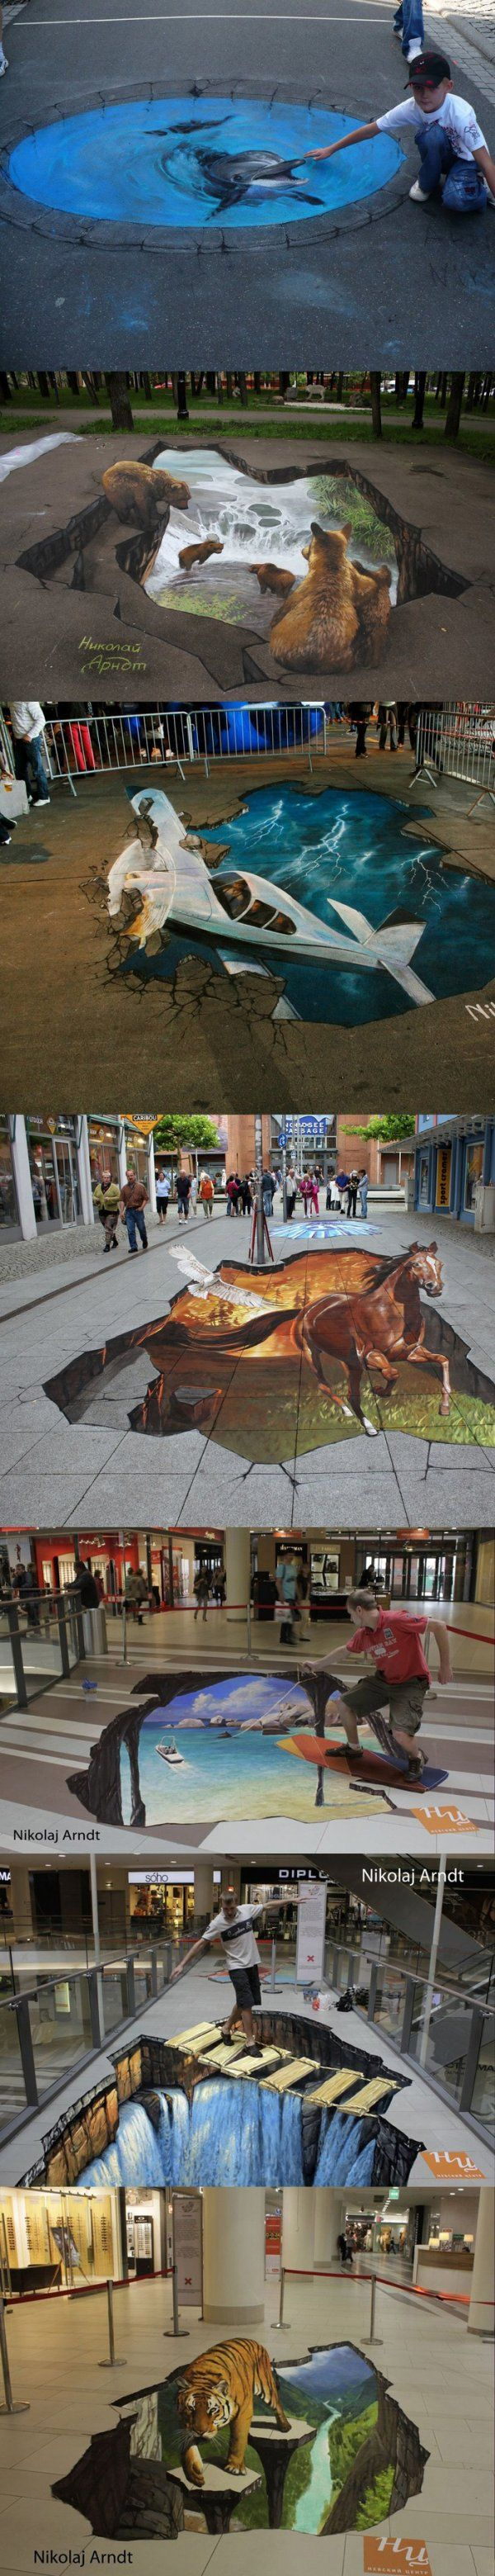 3D-Art - Win Bild | Webfail - Fail Bilder und Fail Videos                                                                                                                                                      More